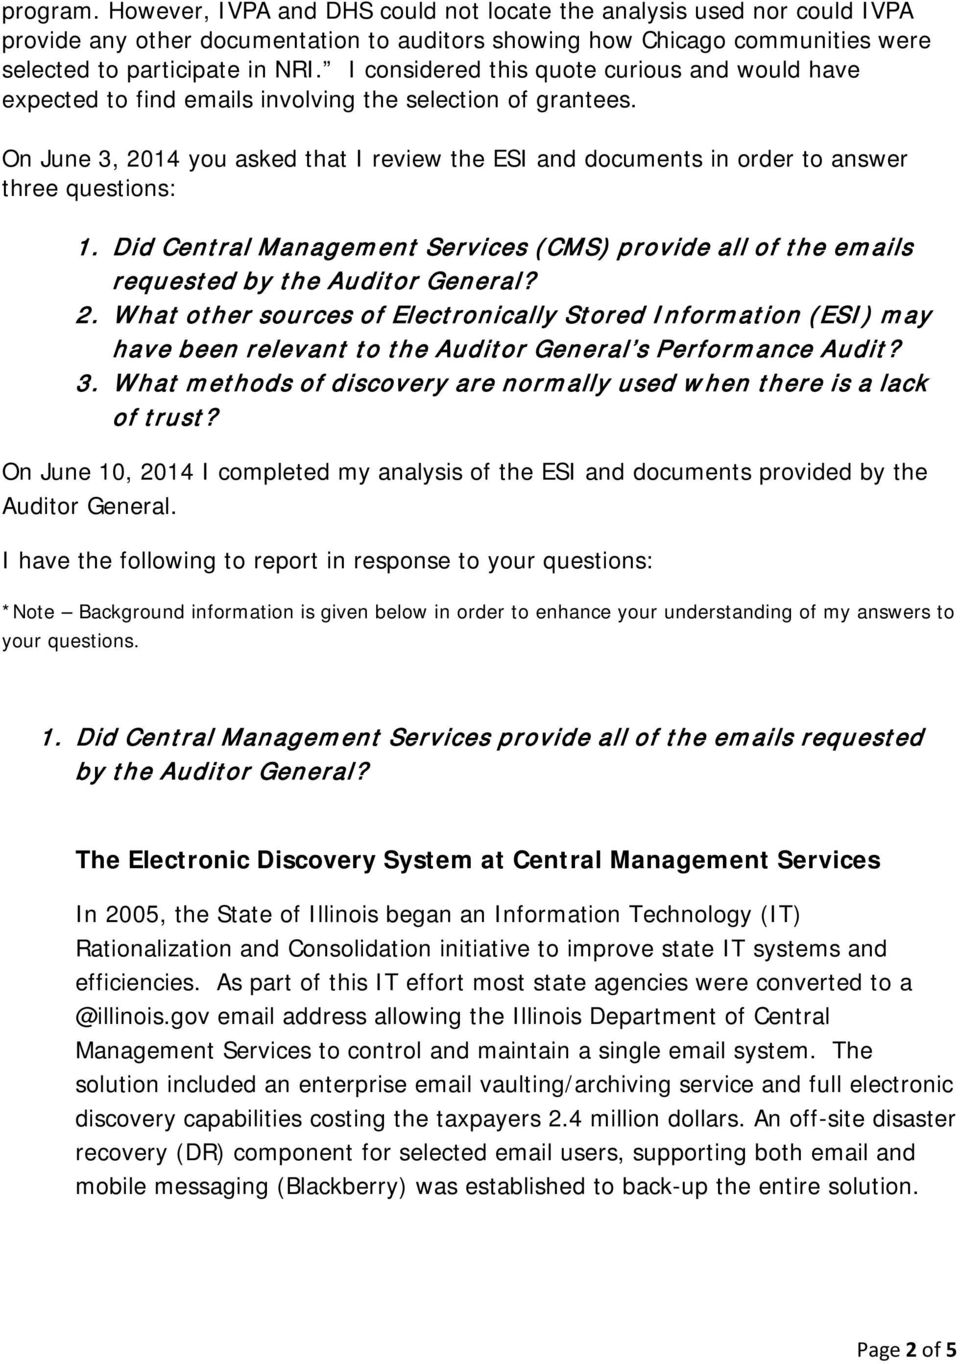 On June 3, 2014 you asked that I review the ESI and documents in order to answer three questions: 1. Did Central Management Services (CMS) provide all of the emails requested by the Auditor General?